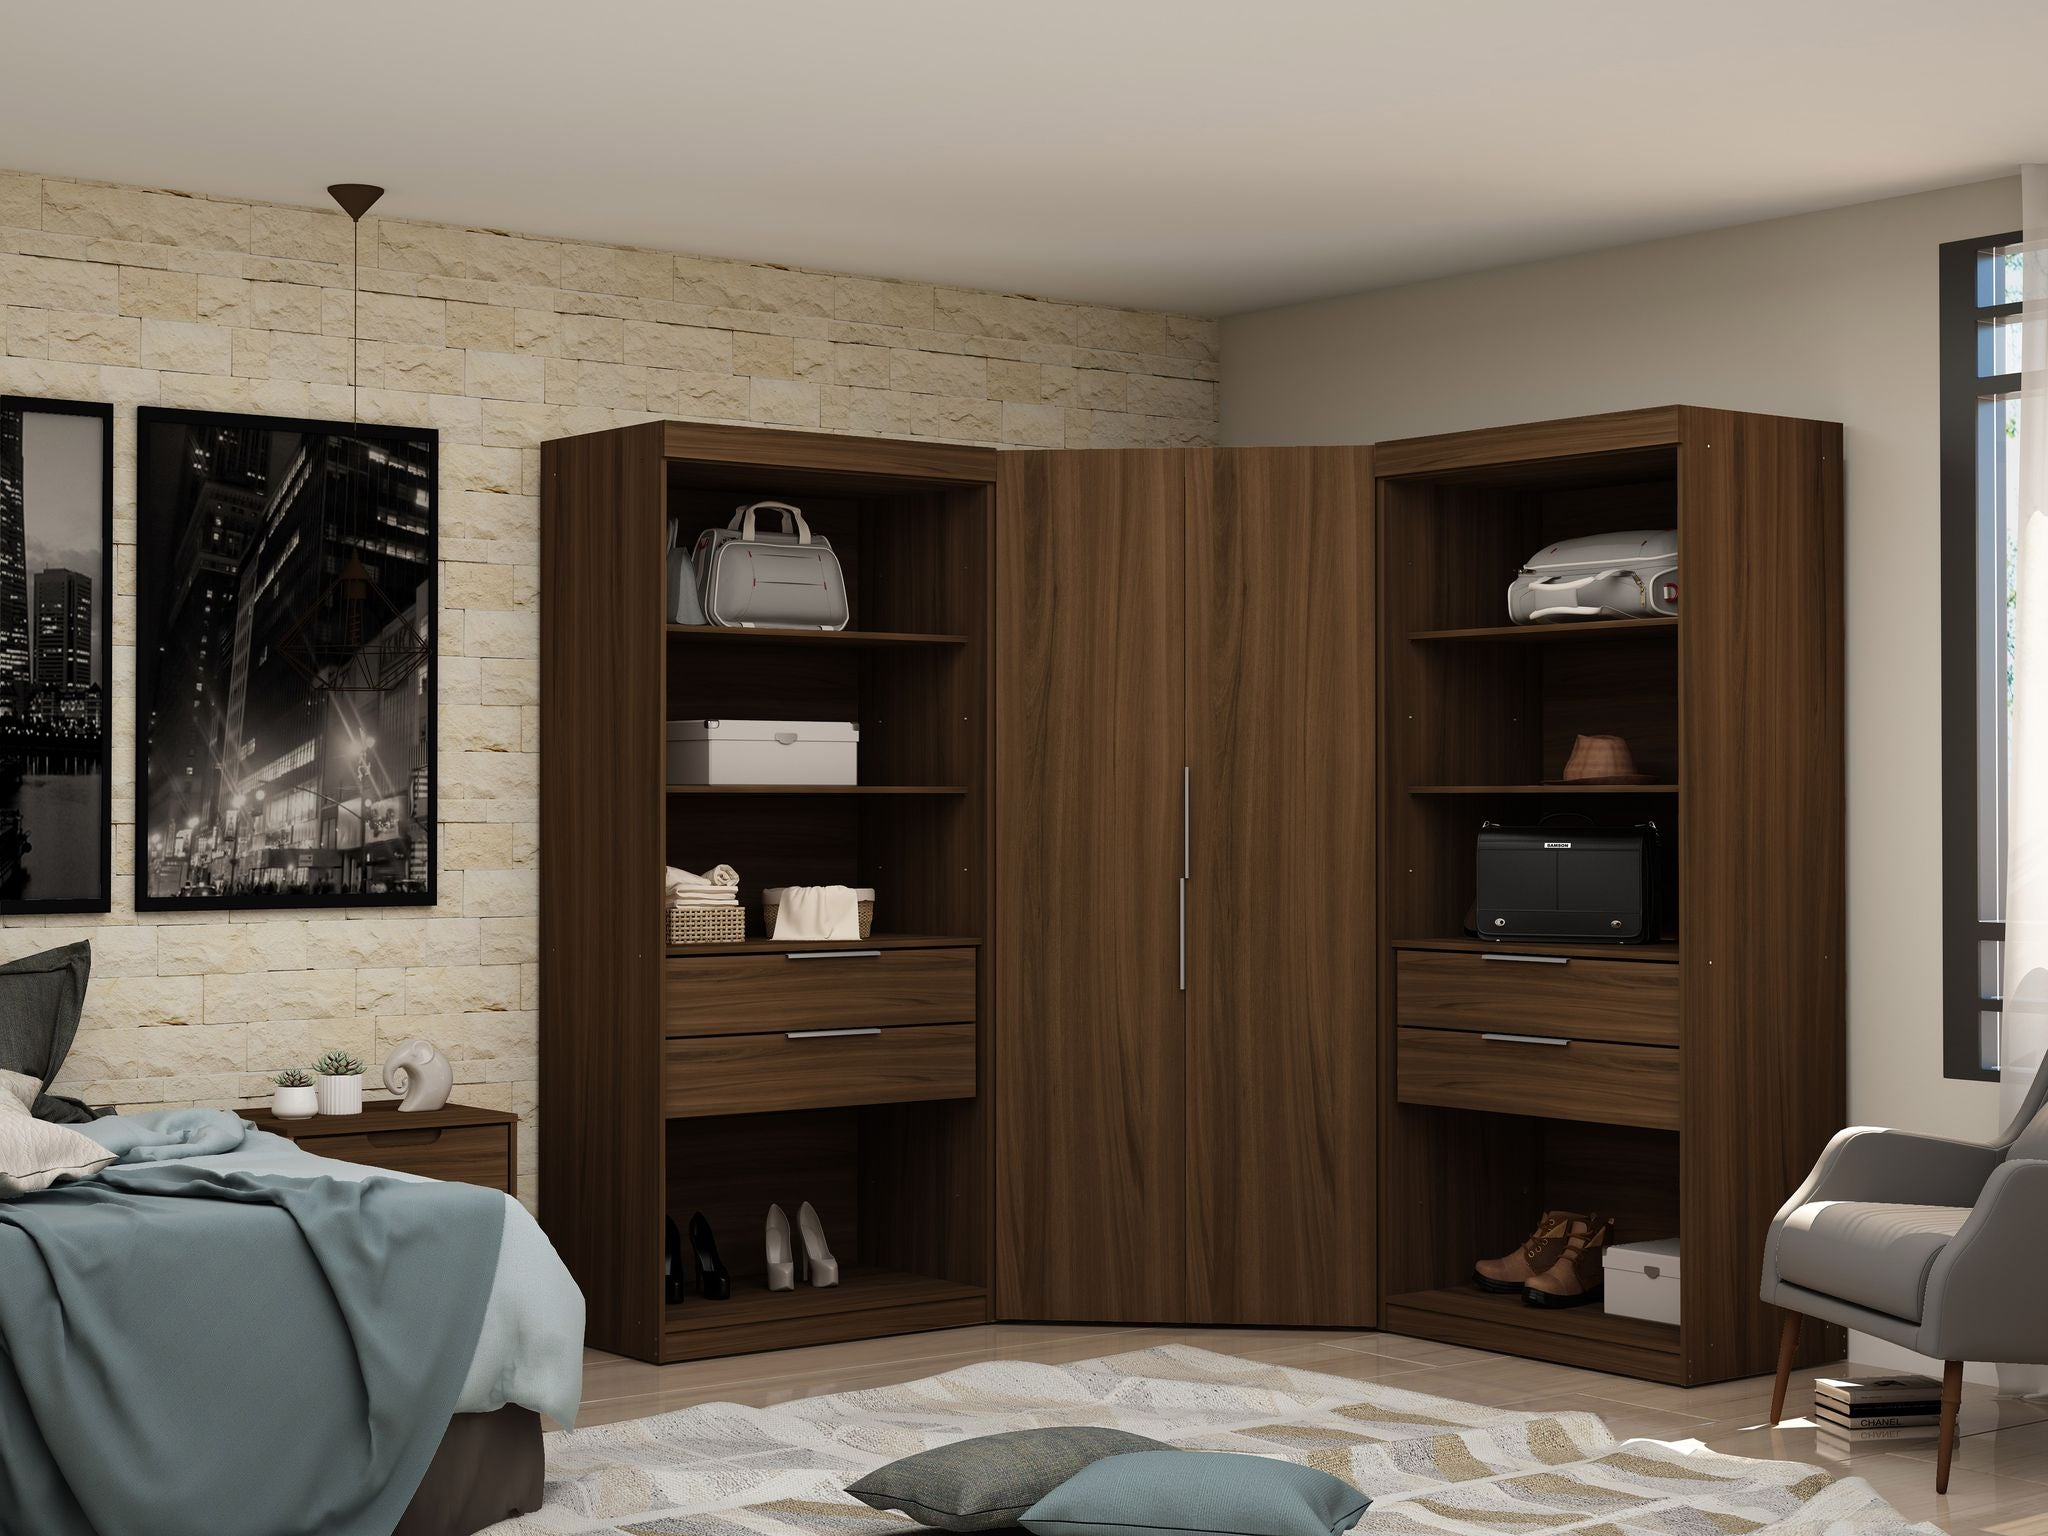 Mulberry 2 0 Semi Open 3 Sectional Modern Wardrobe Corner Closet With Housetie